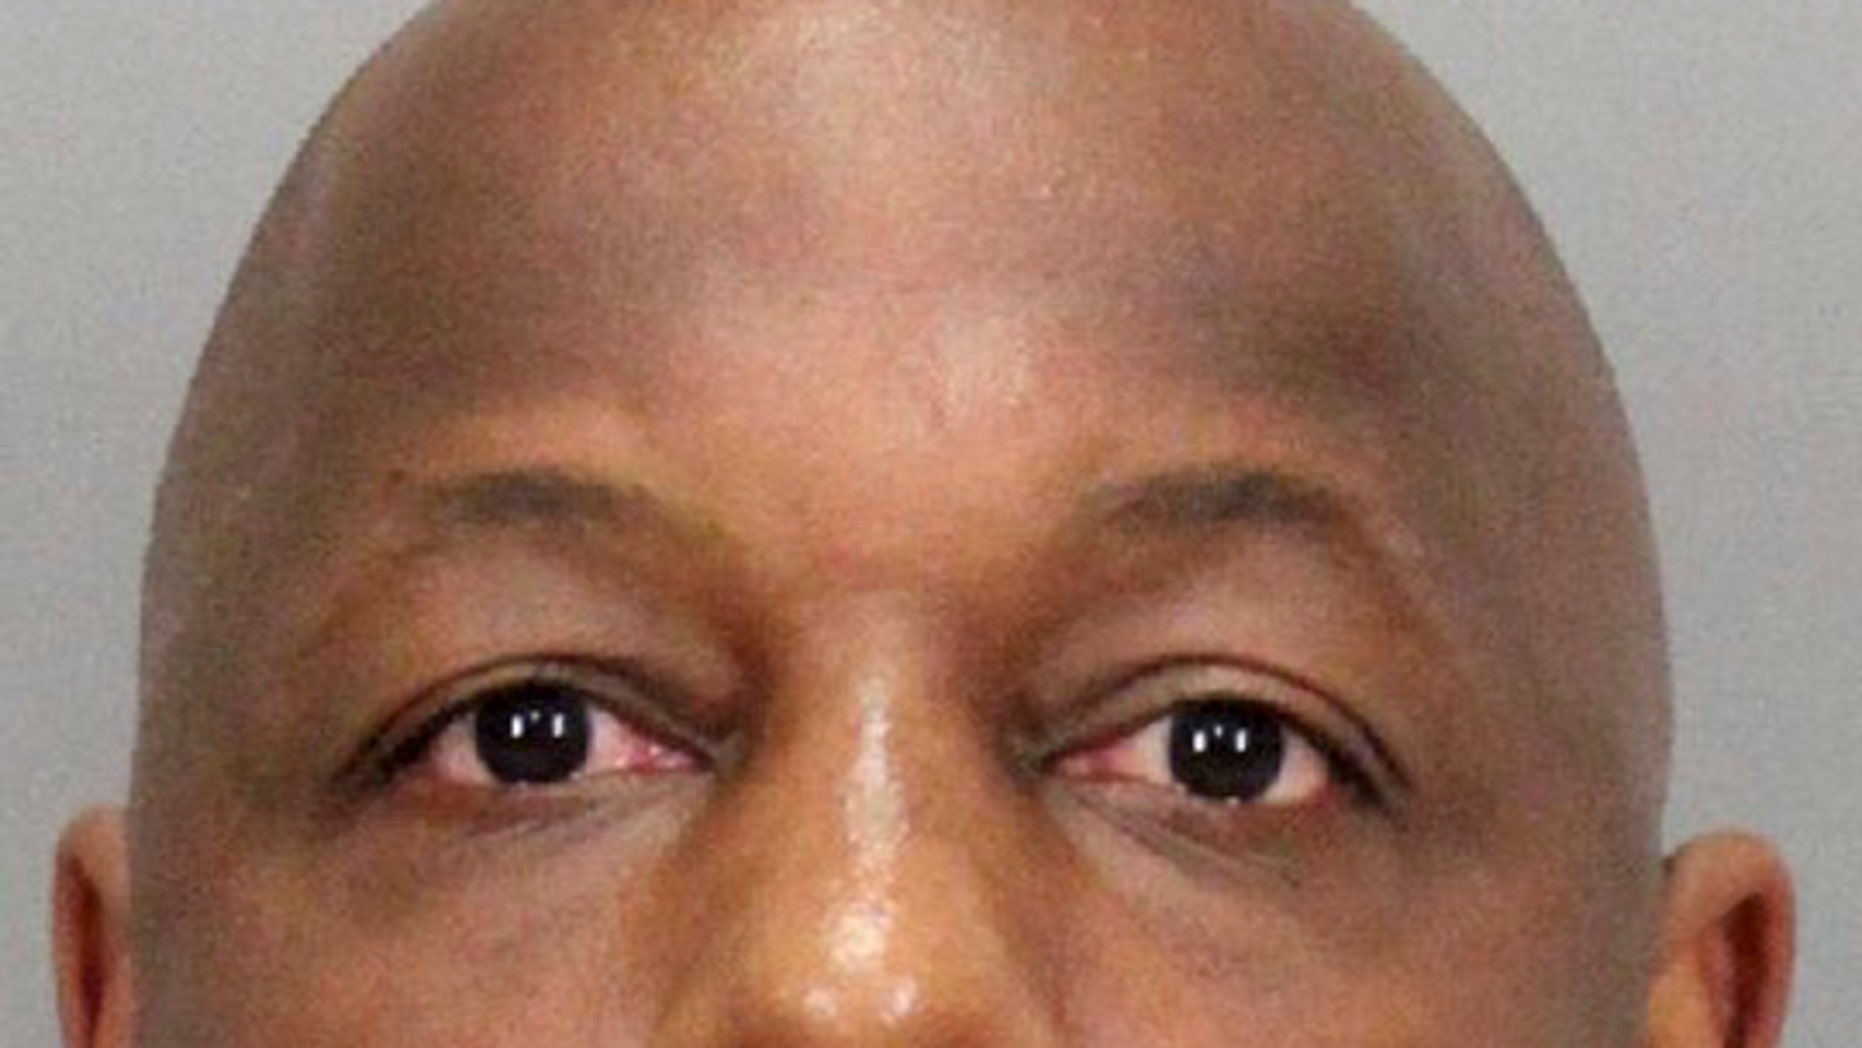 This undated booking photo released by the Santa Clara County District Attorney shows former NFL player Dana Stubblefield.